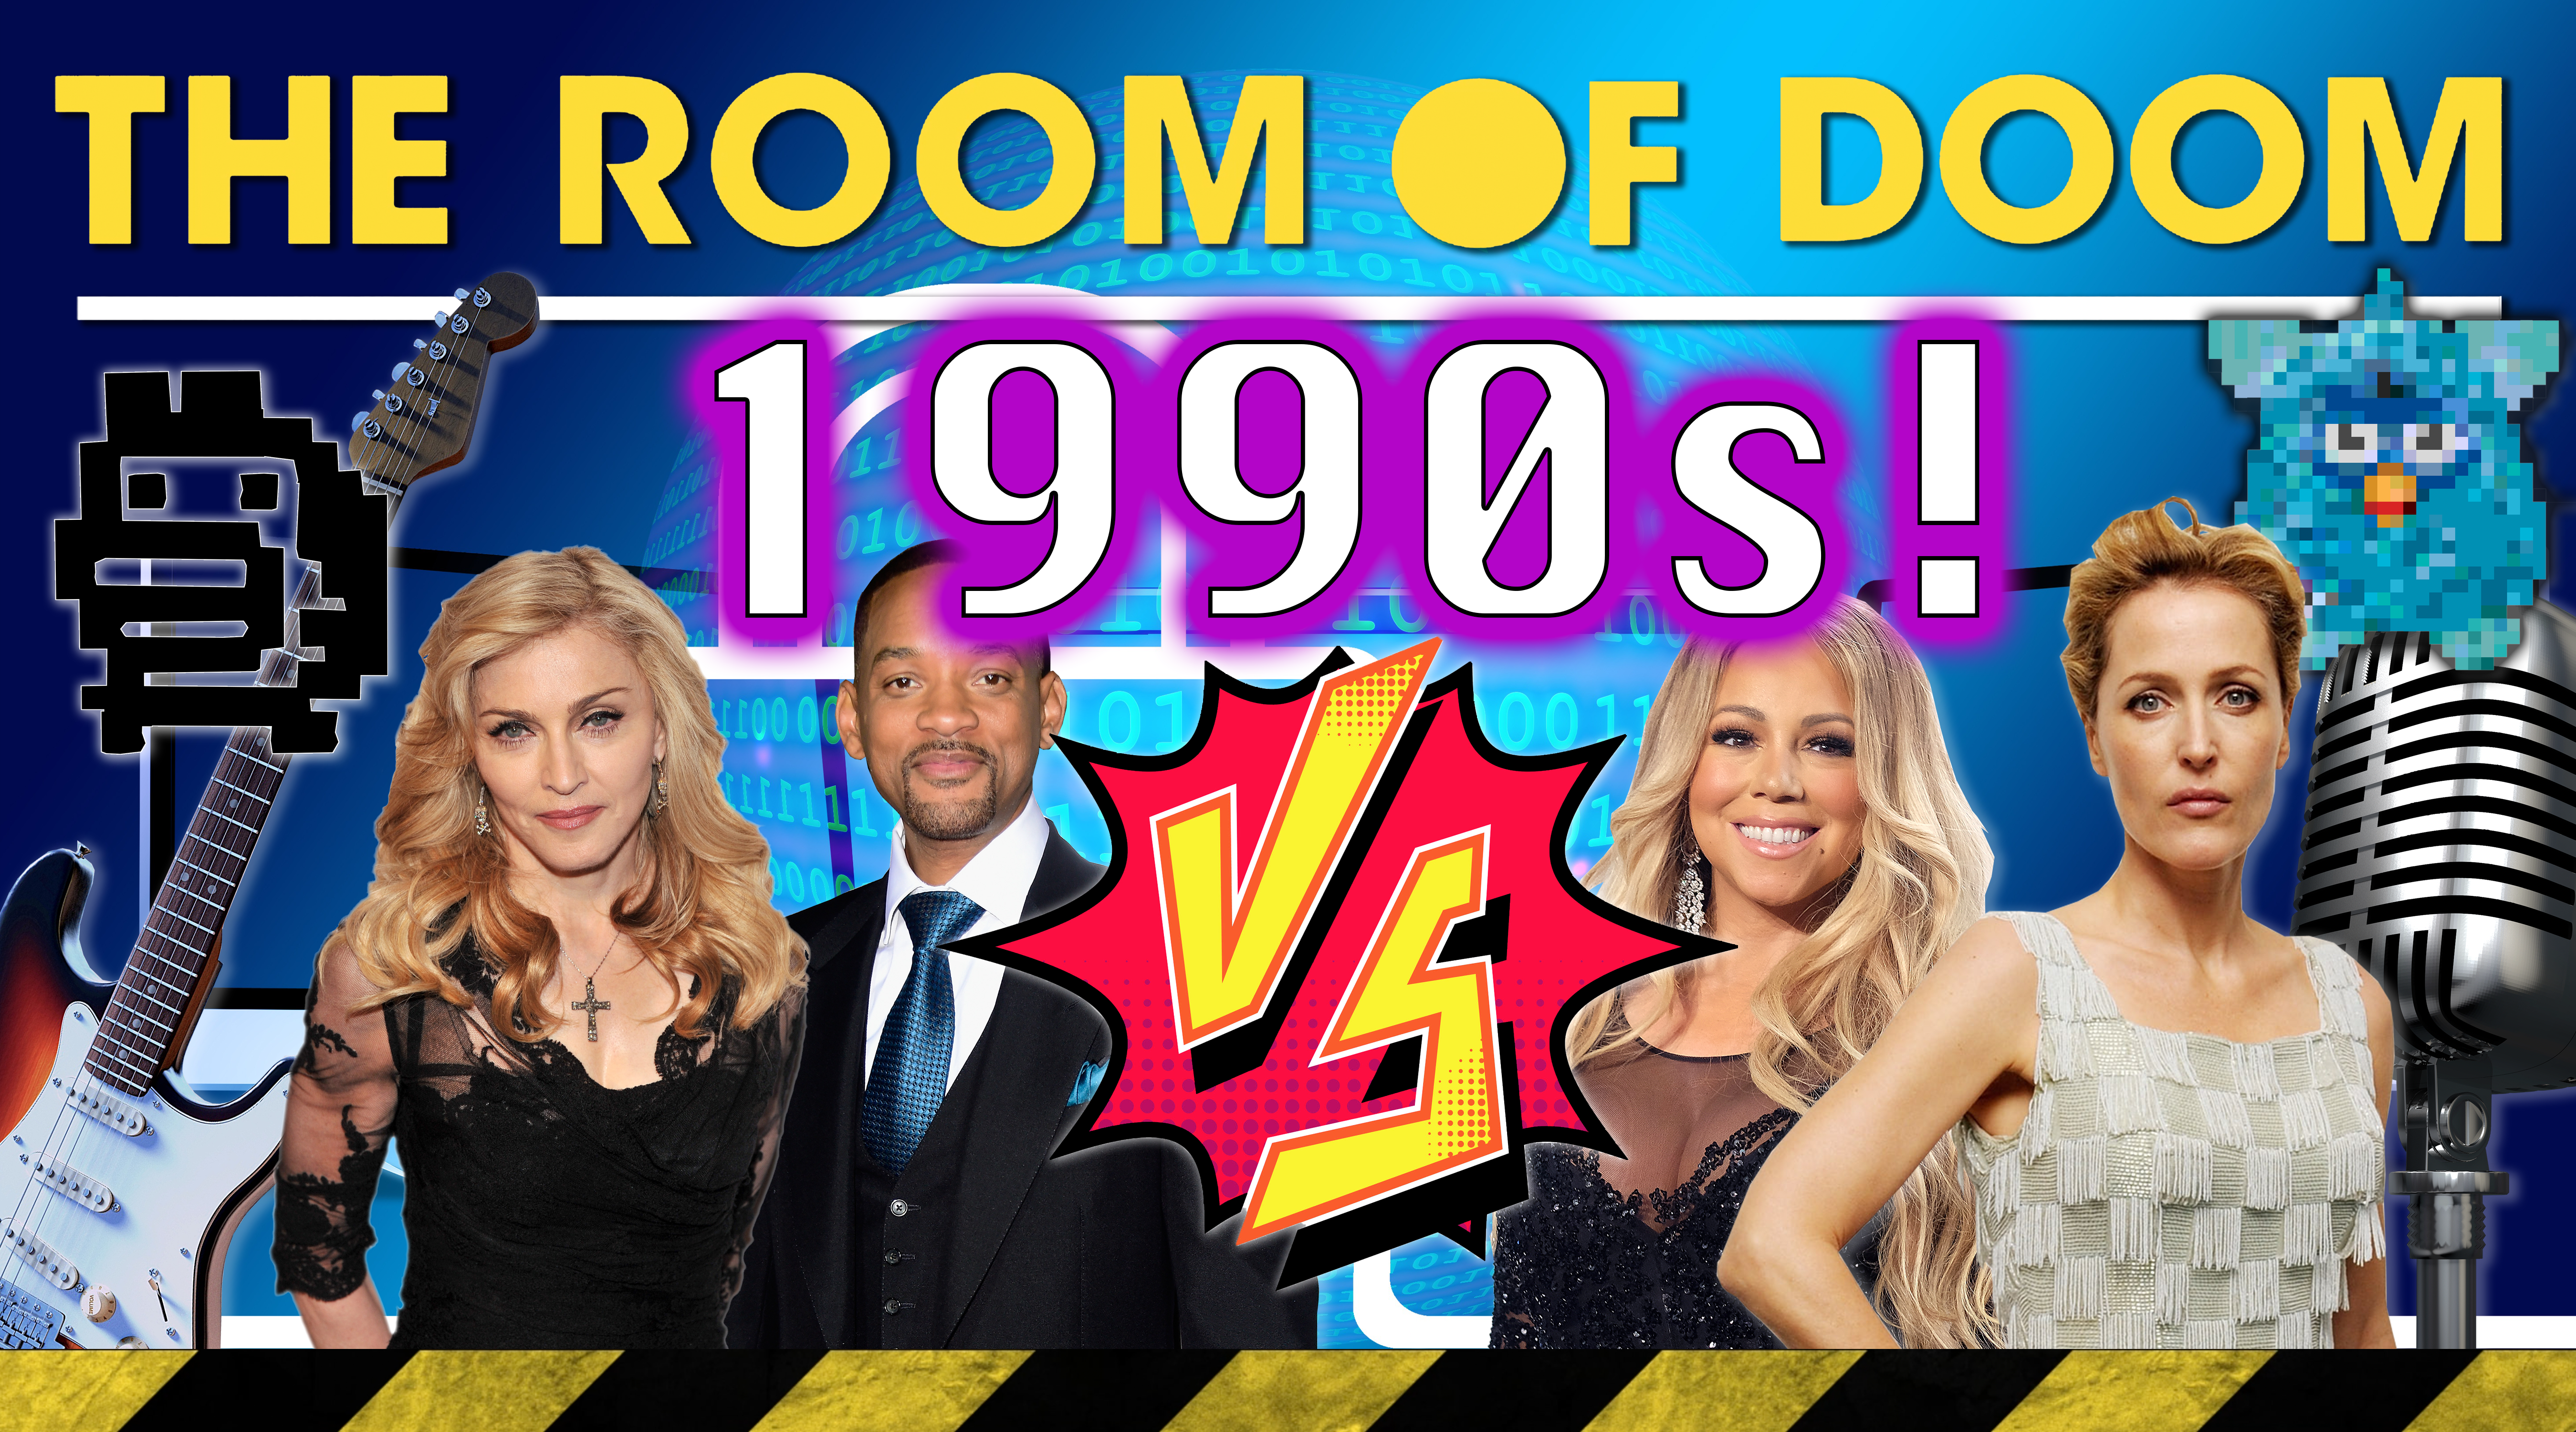 How well do you know the 1990s? Play along with 'The Room of Doom' and find out